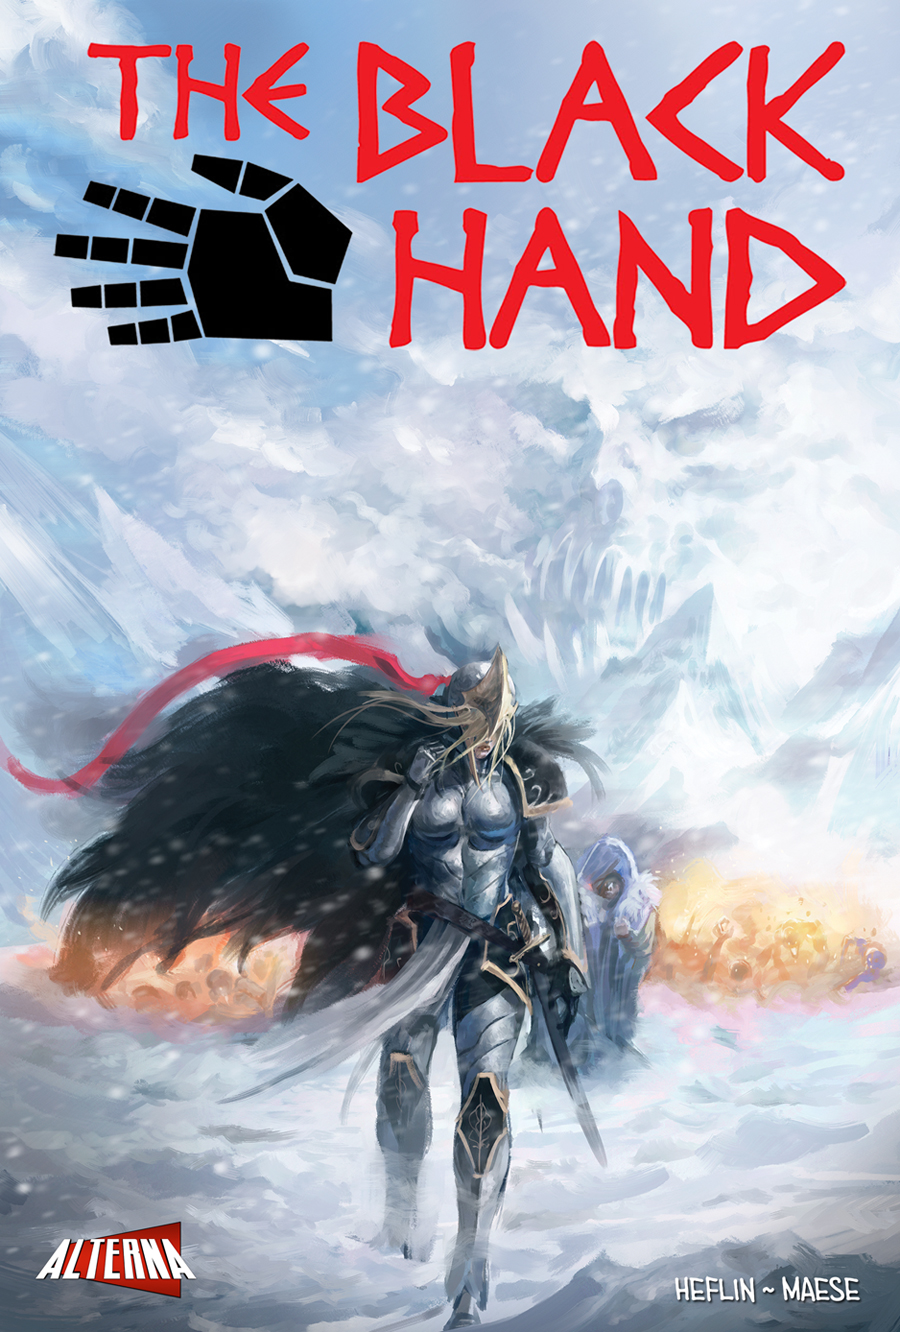 THE BLACK HAND #4 Preview